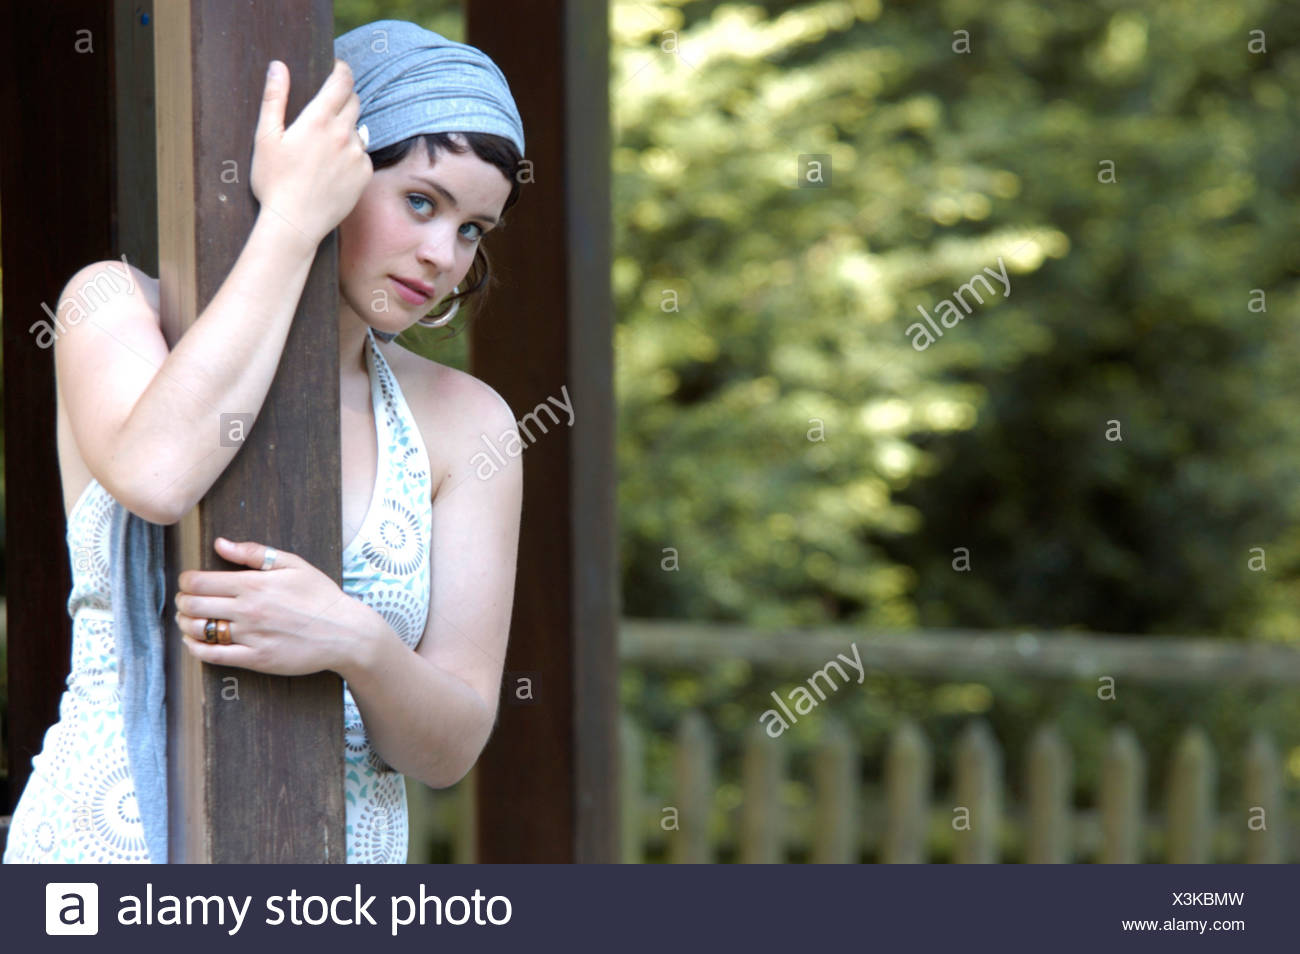 portrait of a beautiful woman with headress, leaning on a post, Germany Stock Photo